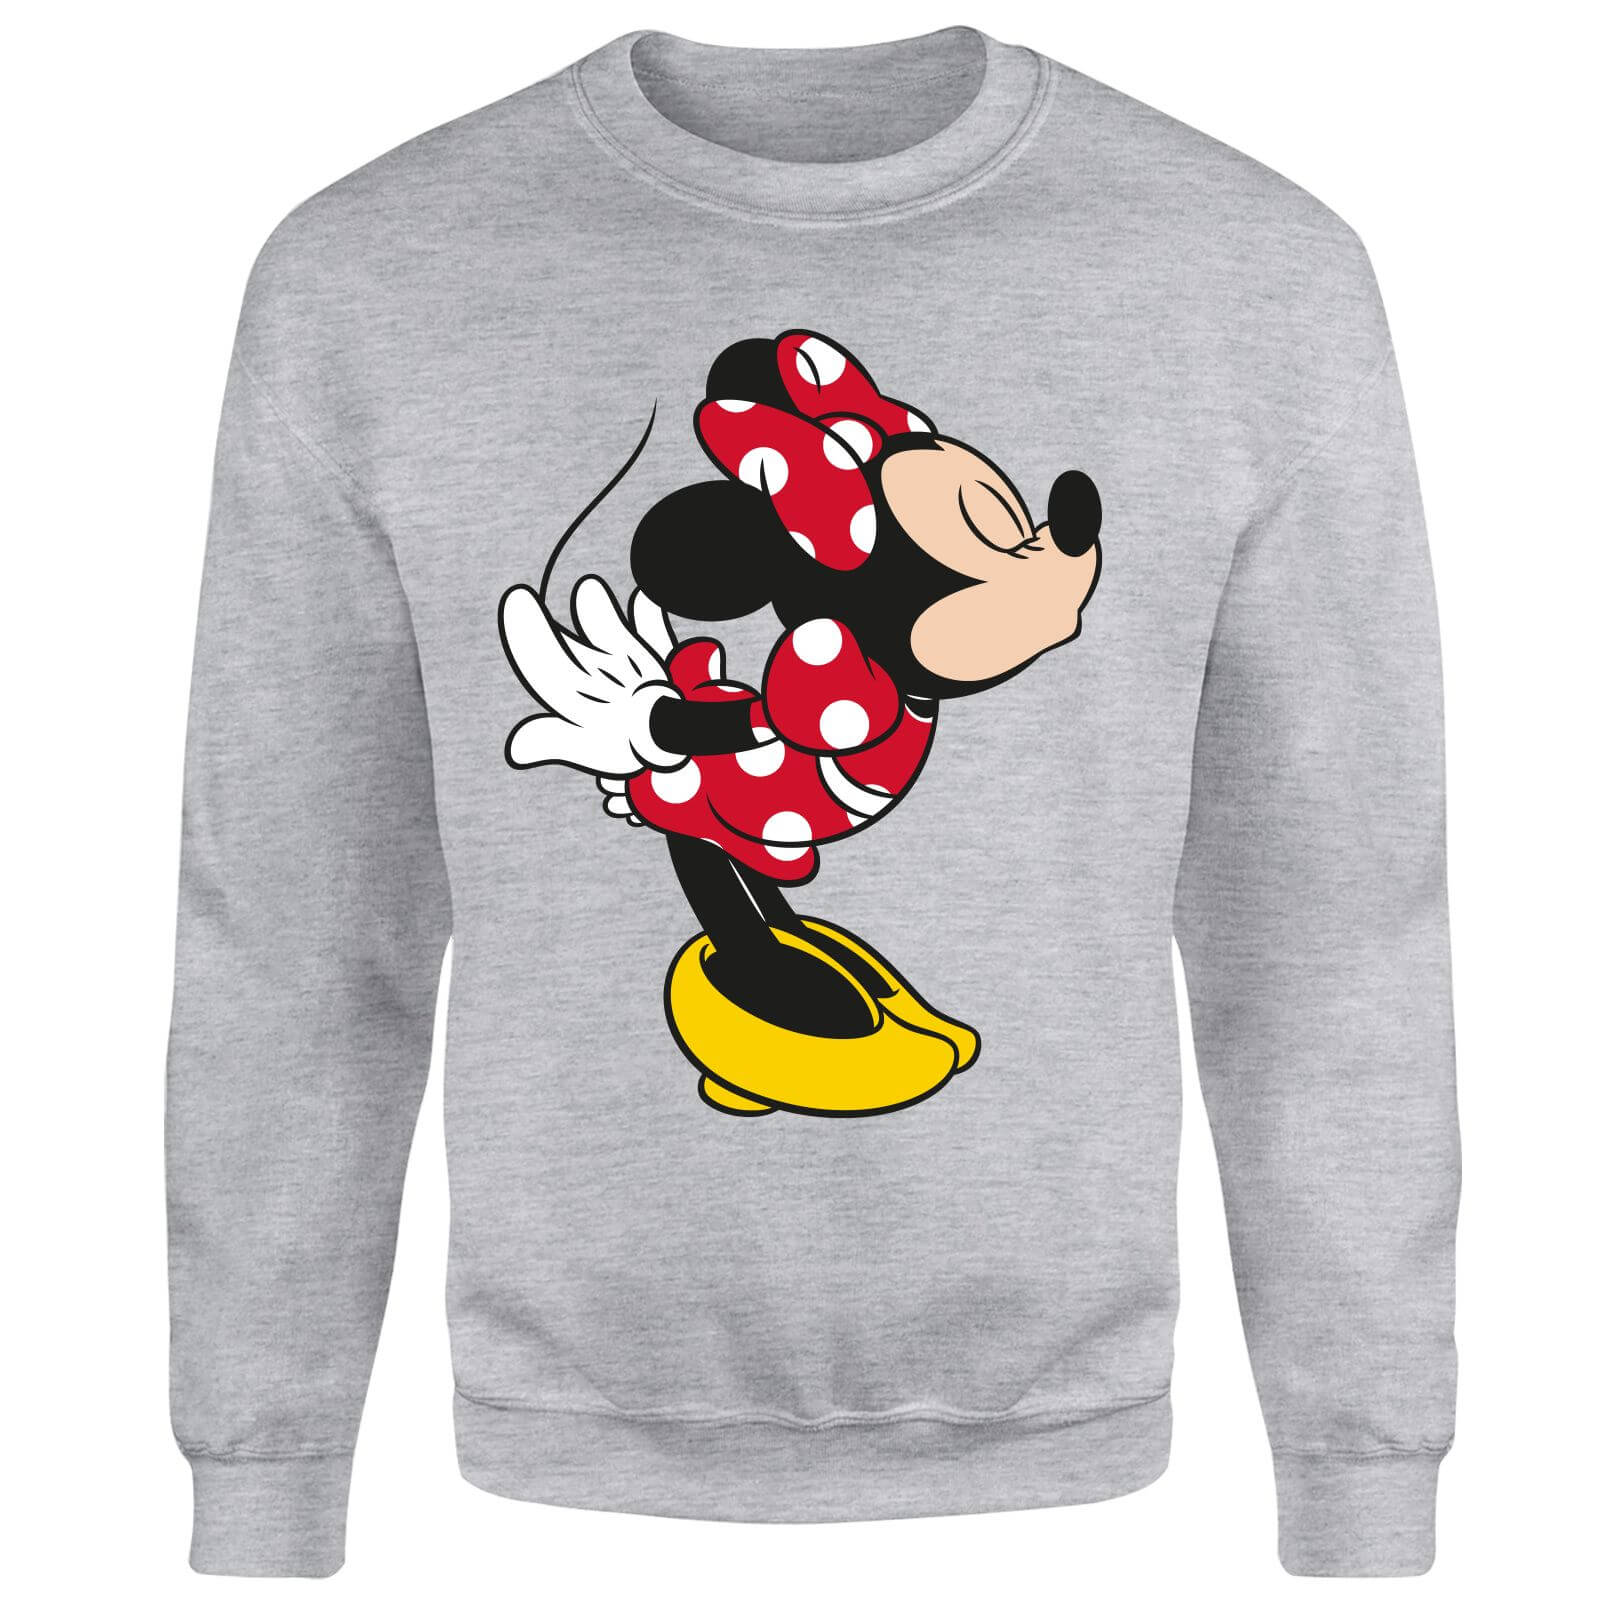 Disney Mickey Mouse Minnie Split Kiss Sweatshirt - Grey